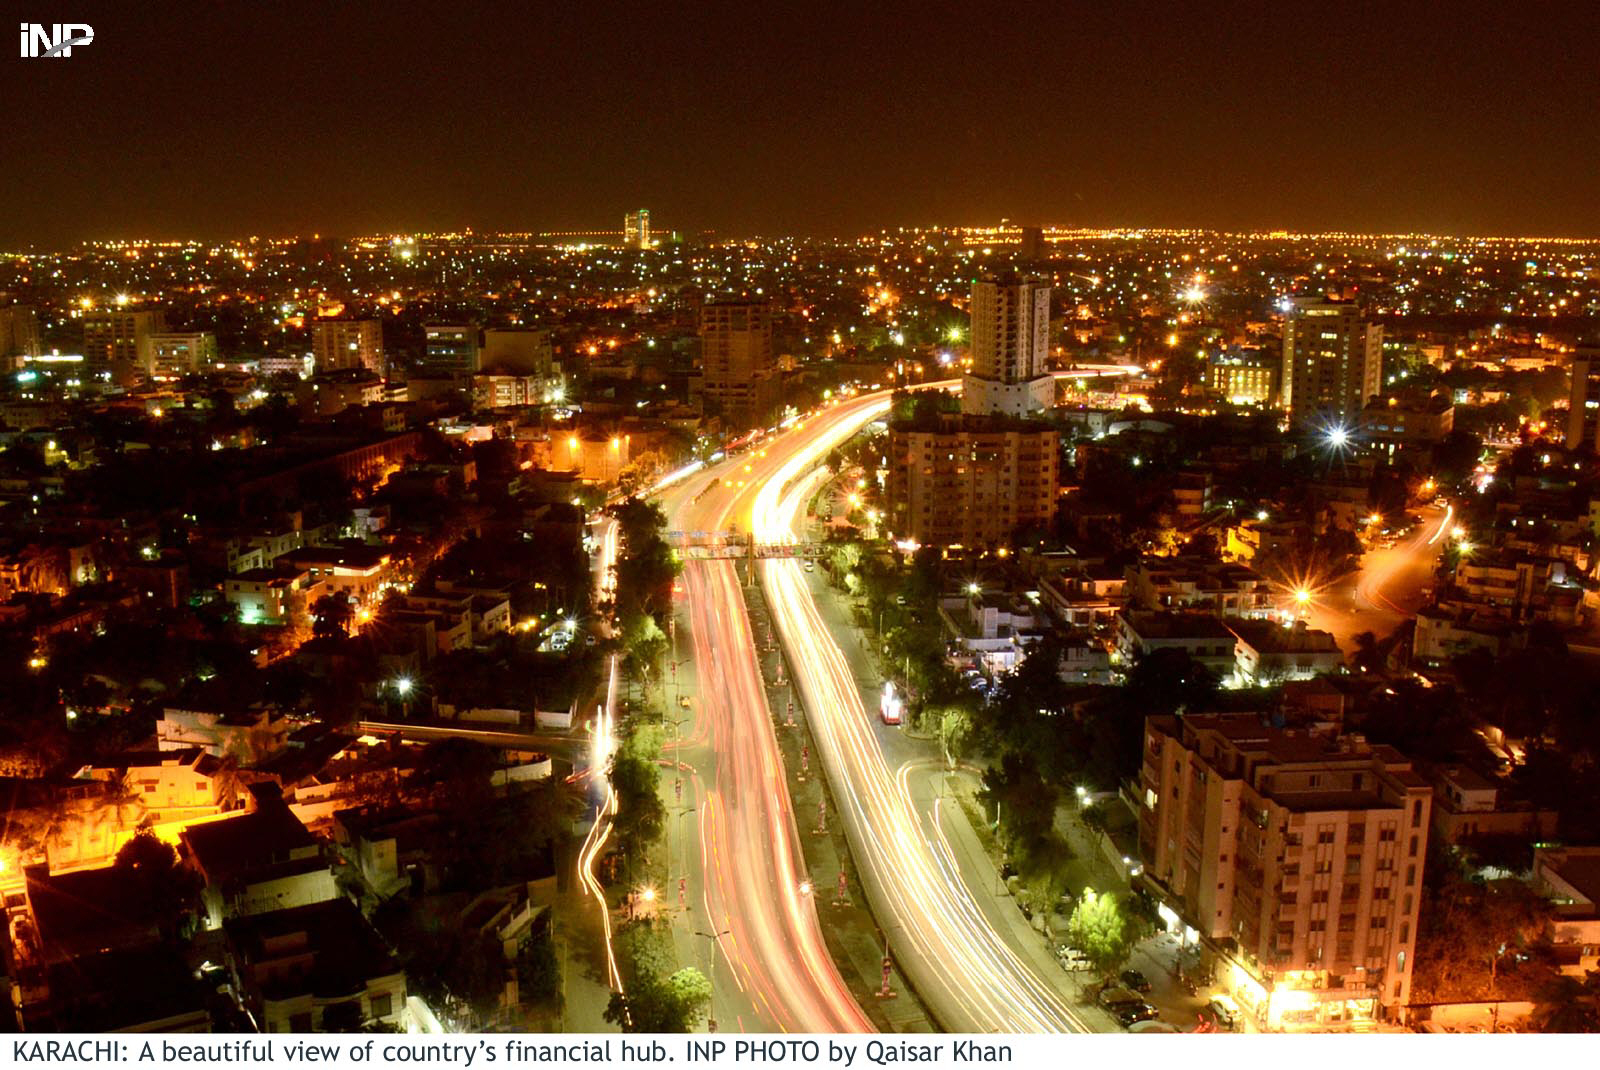 khi_city_view_inp-2-4-2-2